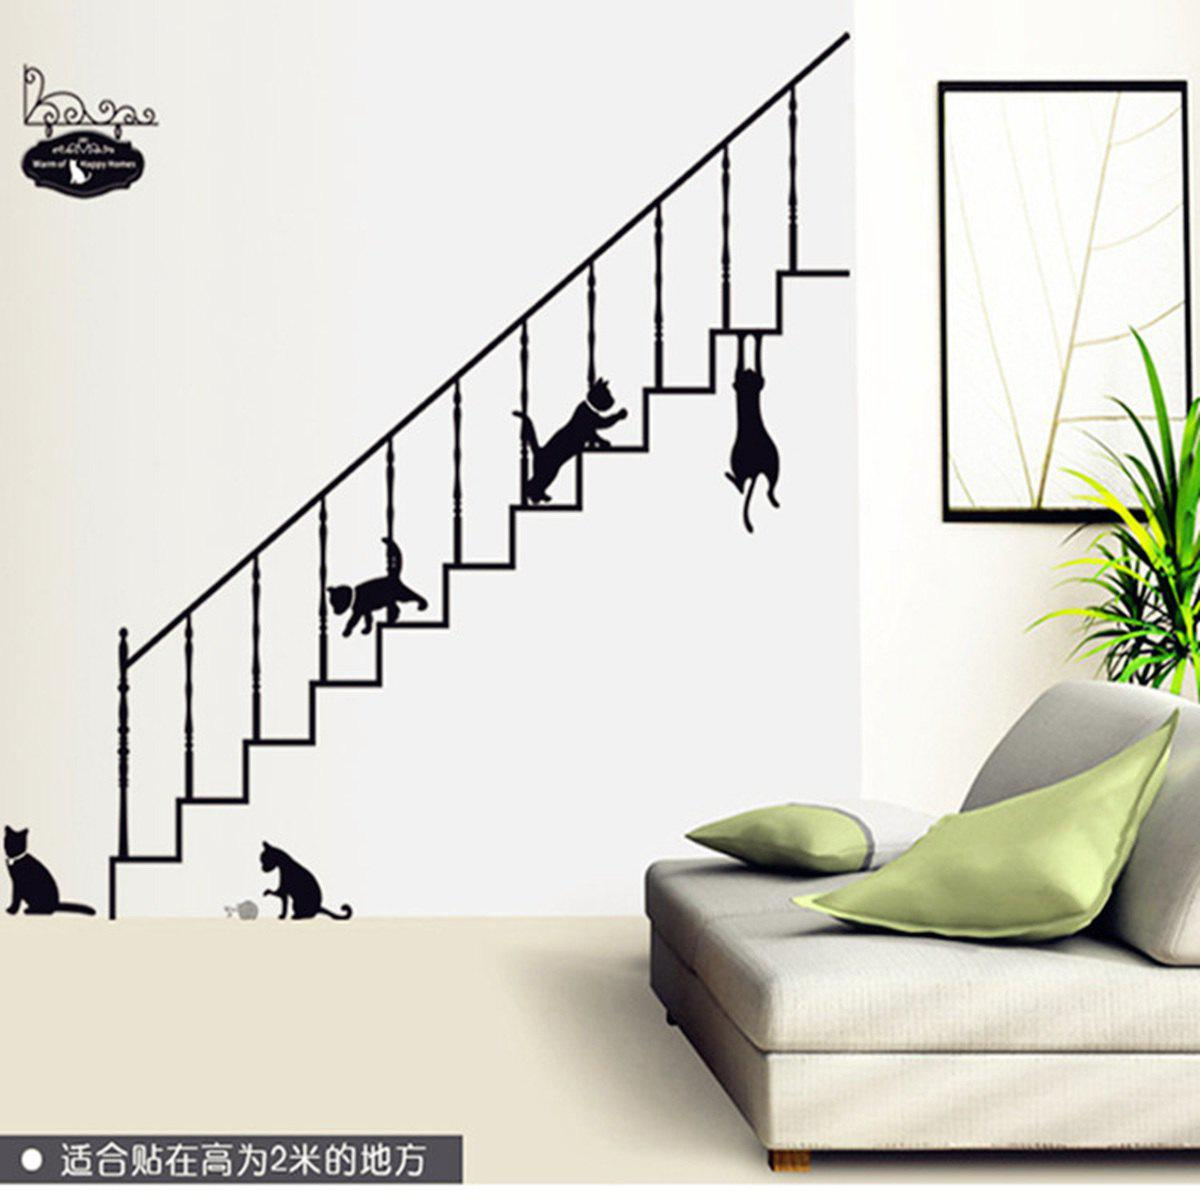 Stairs and Kitty Style Wall Sticker Home Appliances Decor Wall Decals sea wave stairs sticker 6pcs